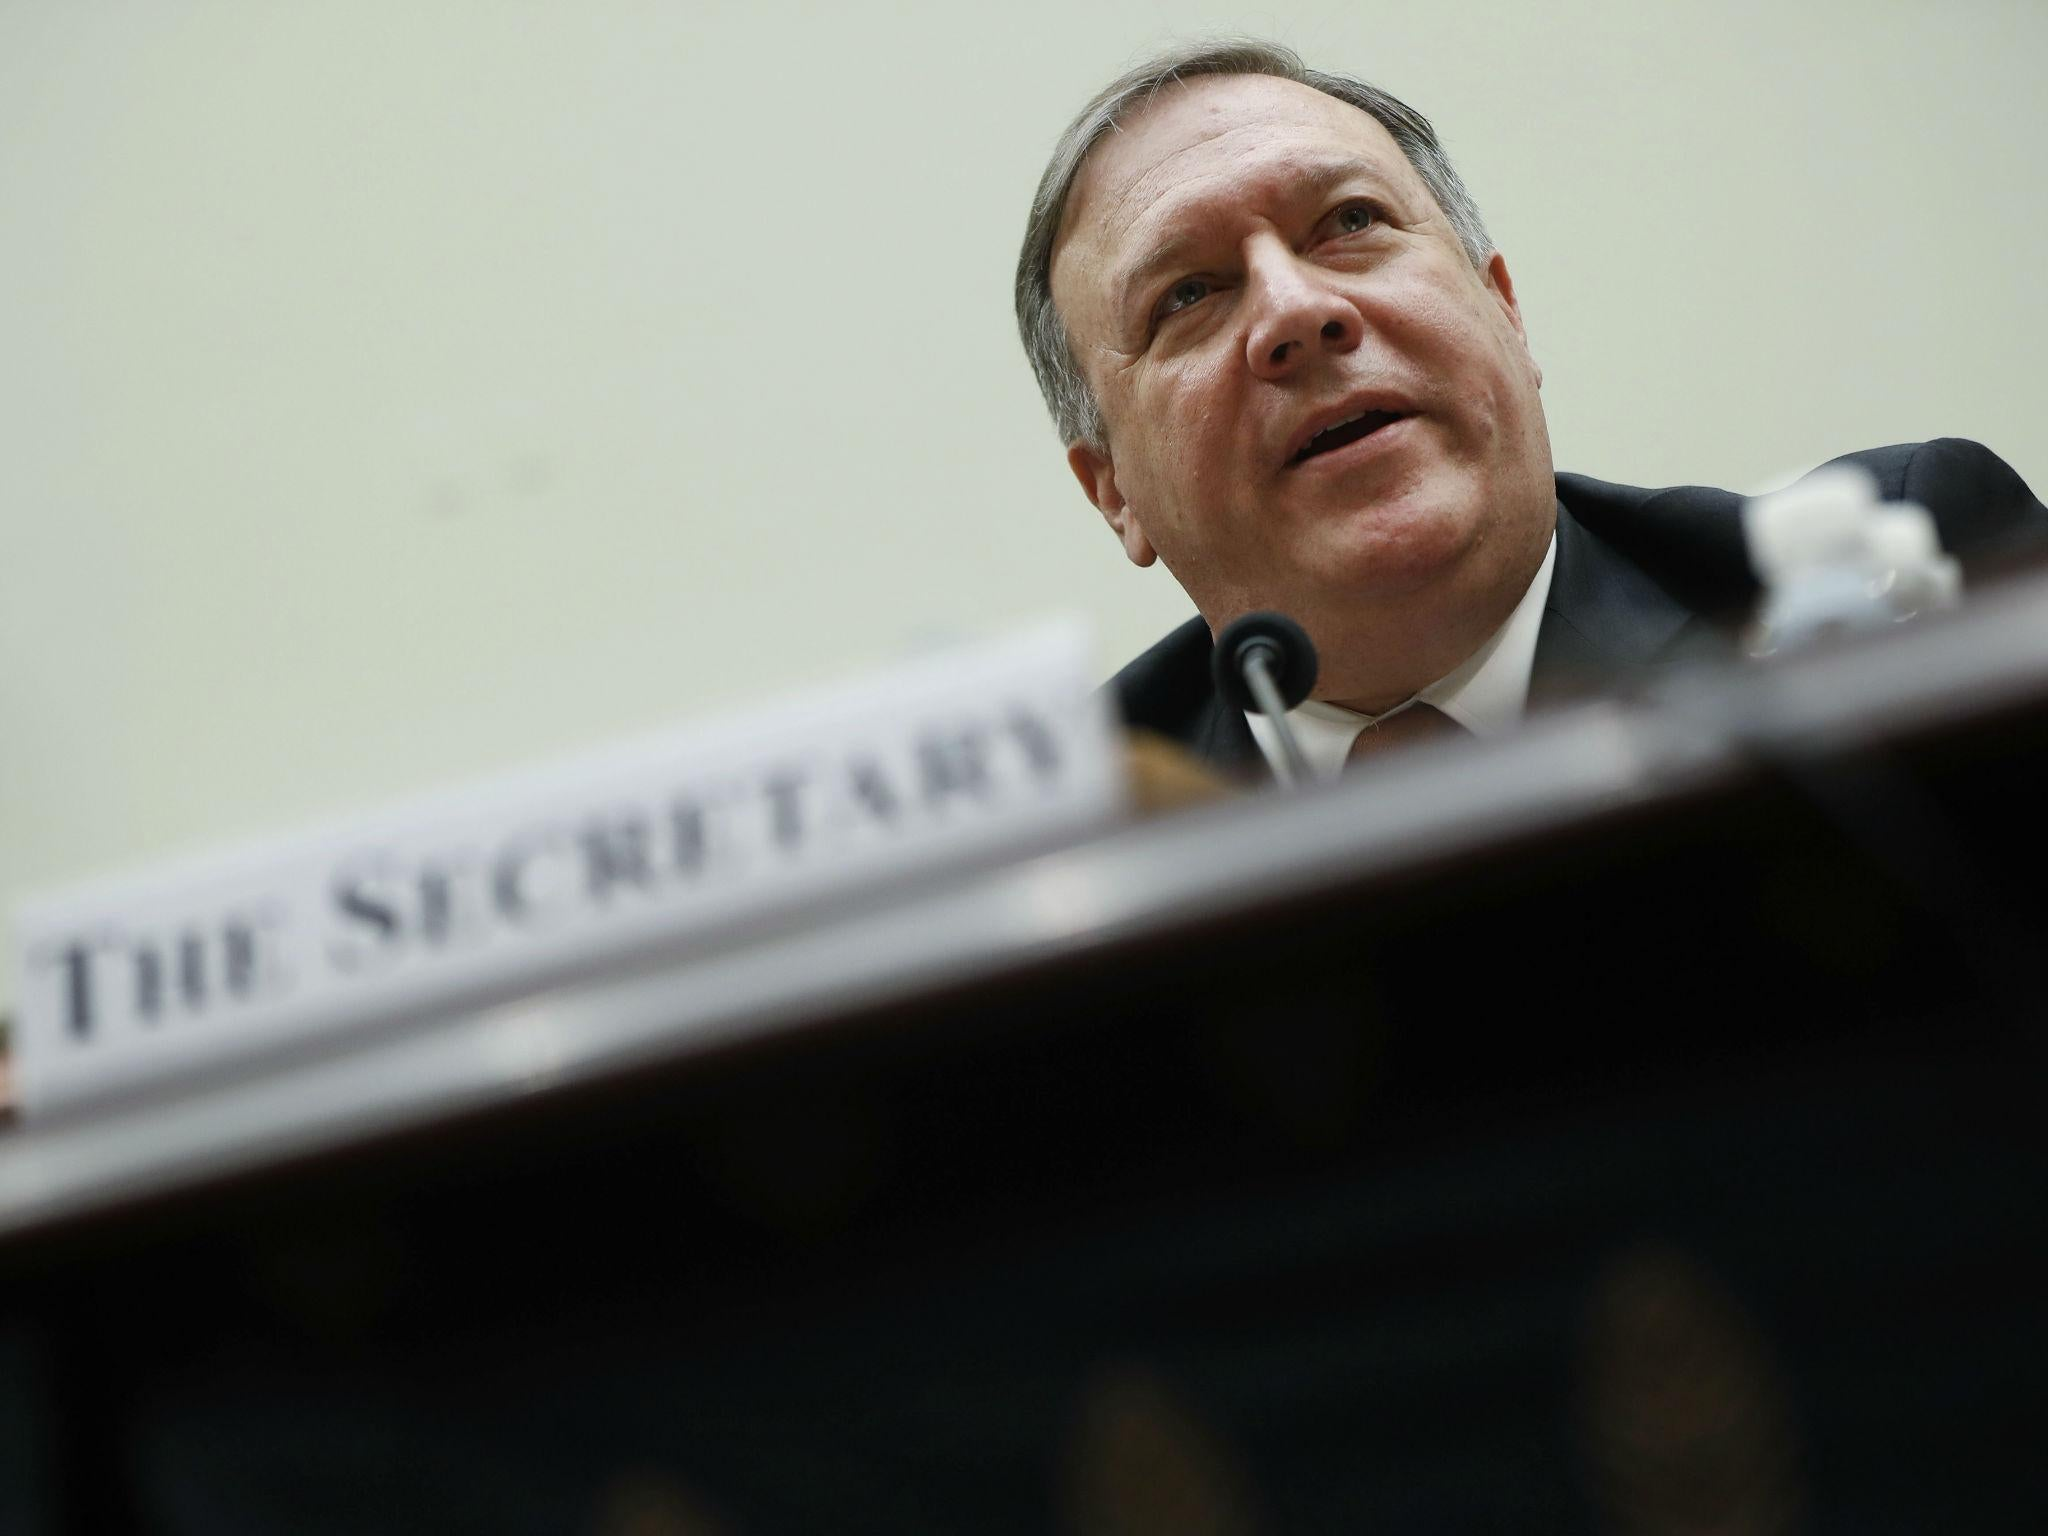 Mike Pompeo says guided missiles 'decrease risk' of civilian deaths as Congress reviews Saudi arms sale